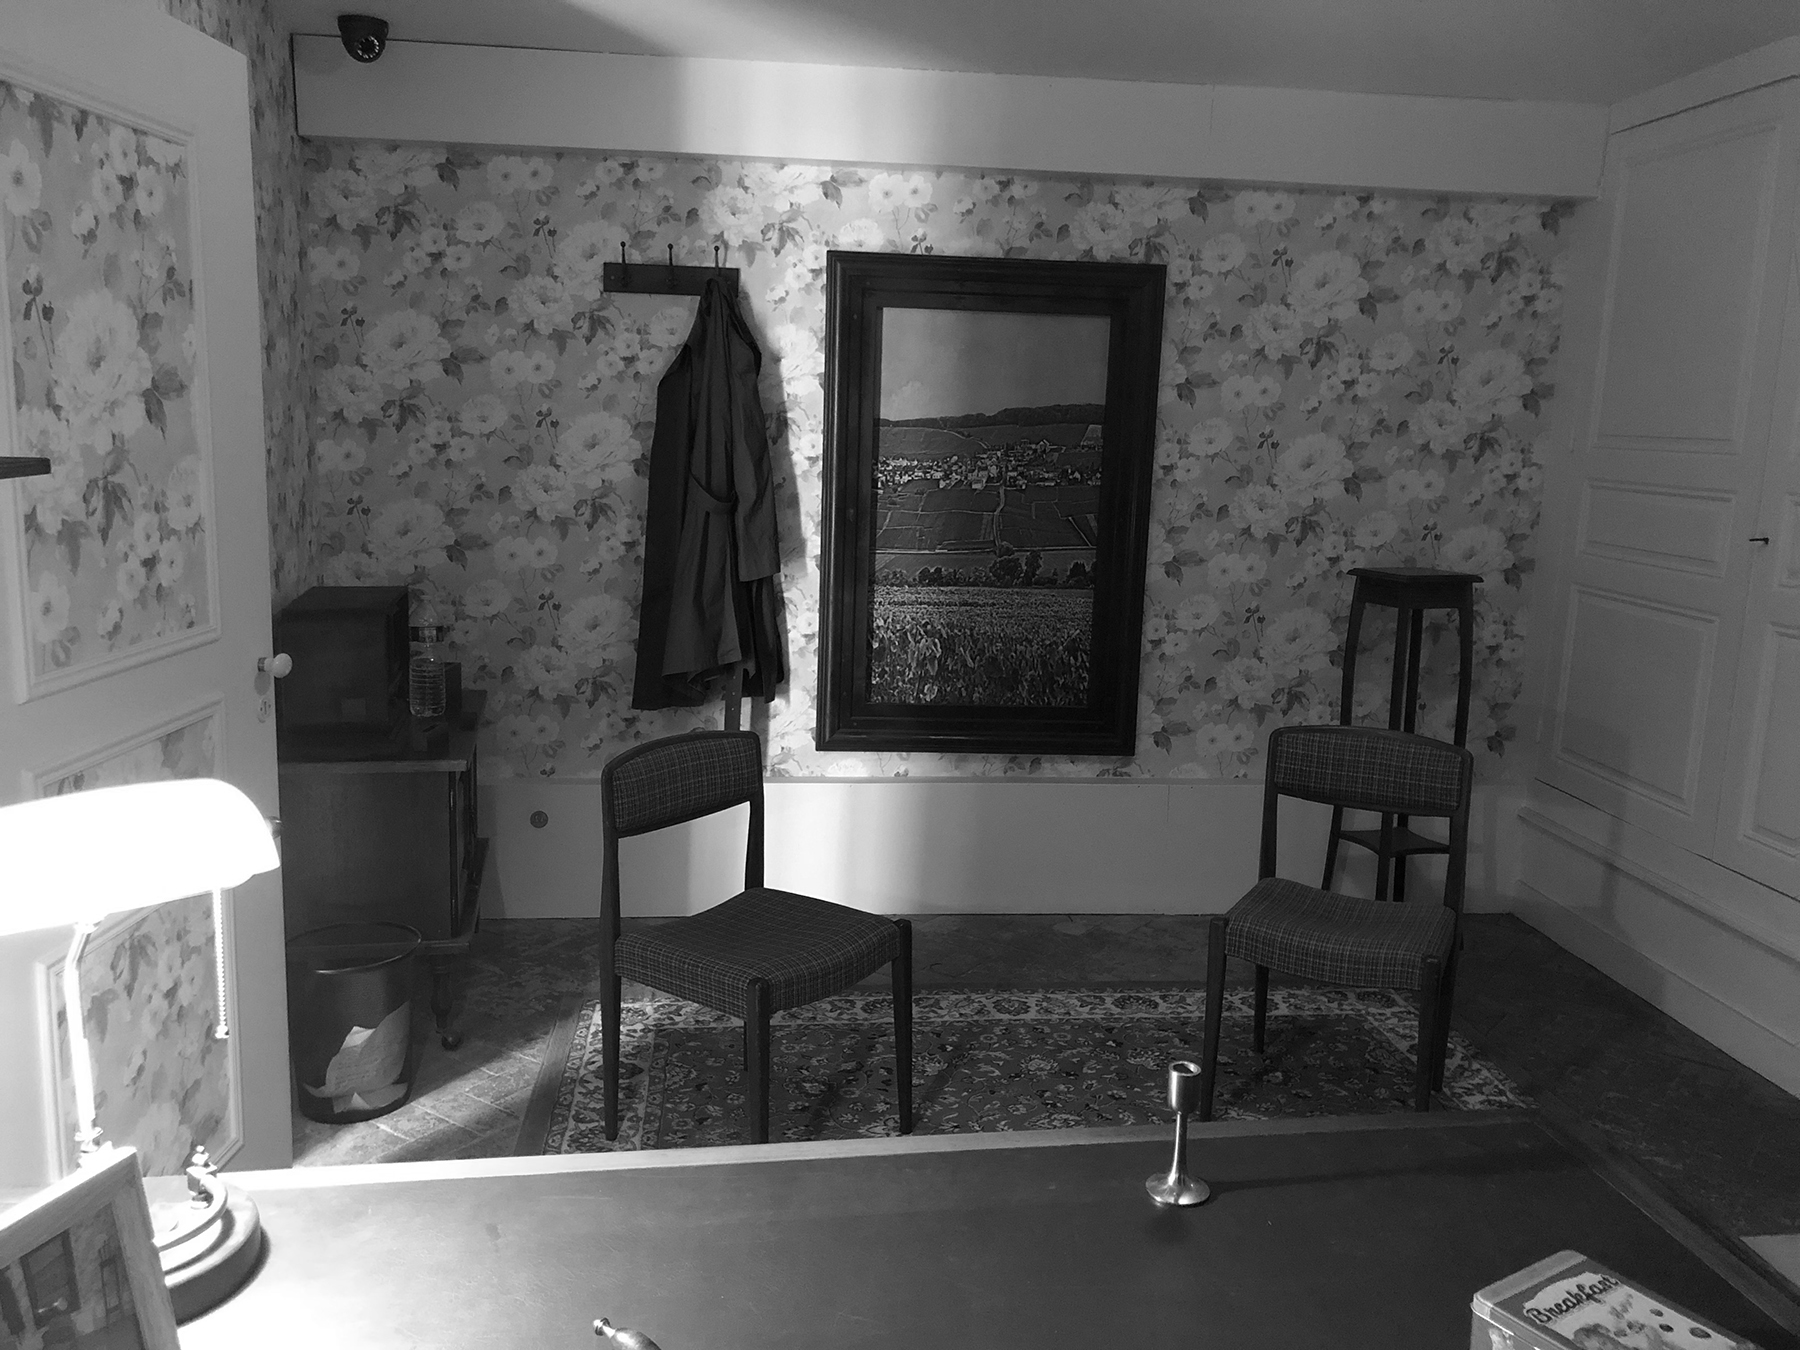 Bureau 1950 escape game zone secrète.